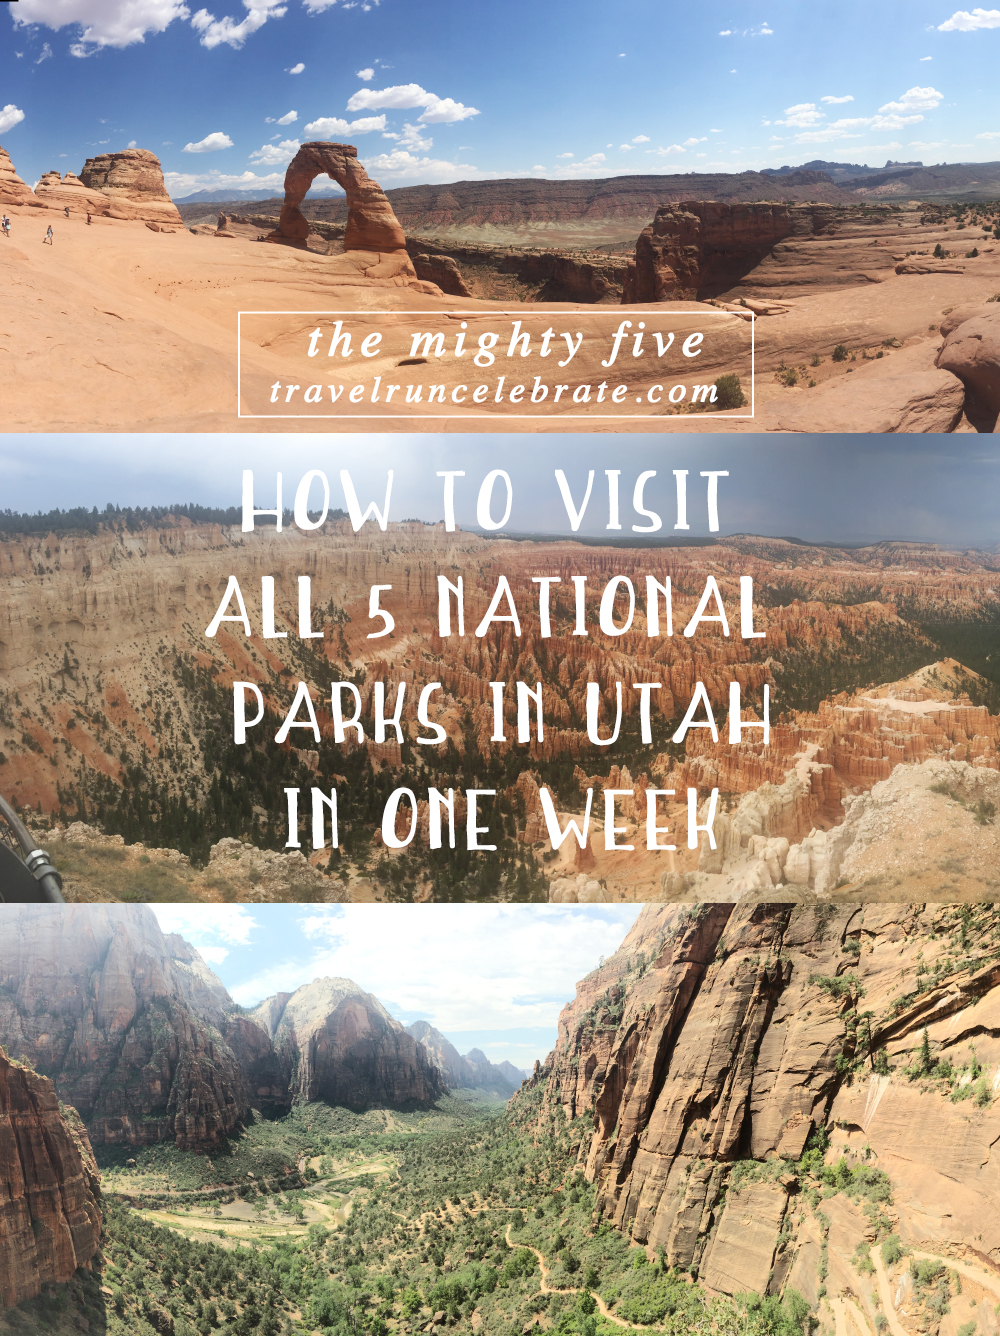 a week in utah: how to visit all 5 national parks - travel run celebrate